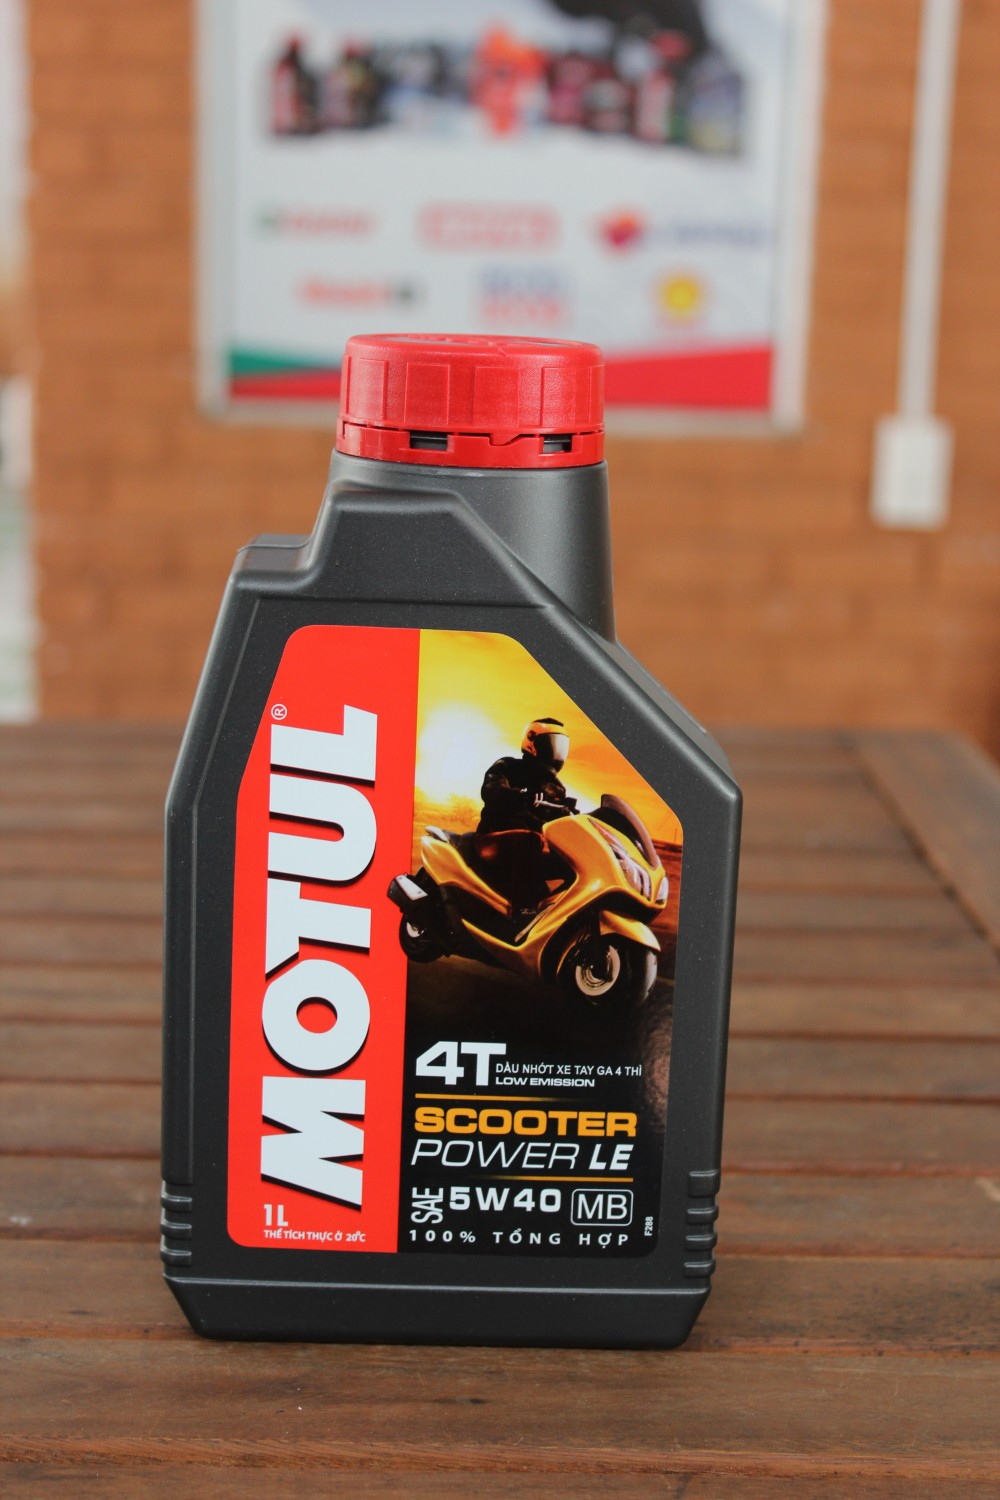 Motul scooter power le 5w40 - 1